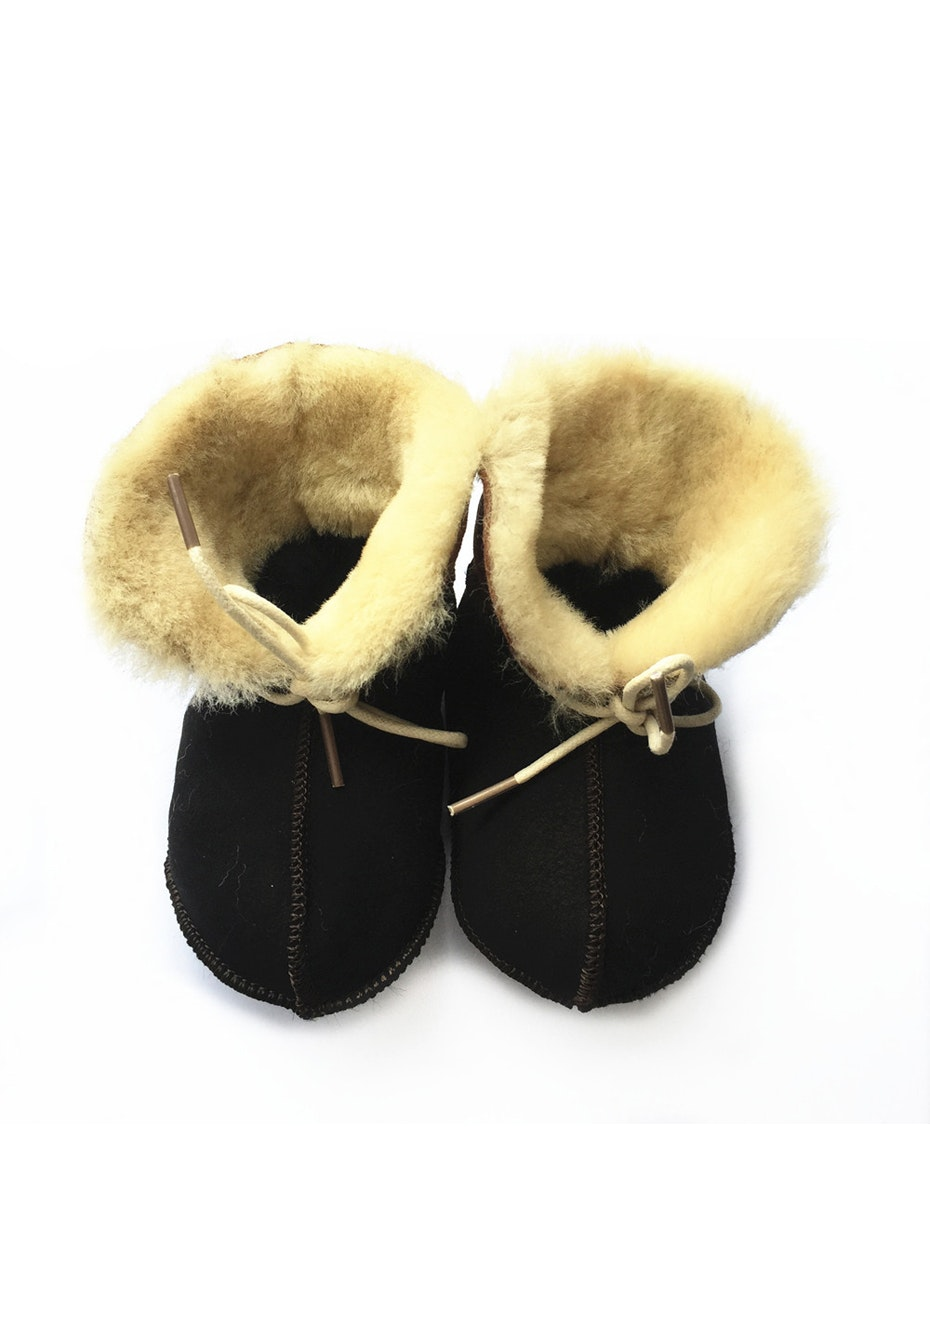 Baby  Leather Shoes - Black / Cream Fur